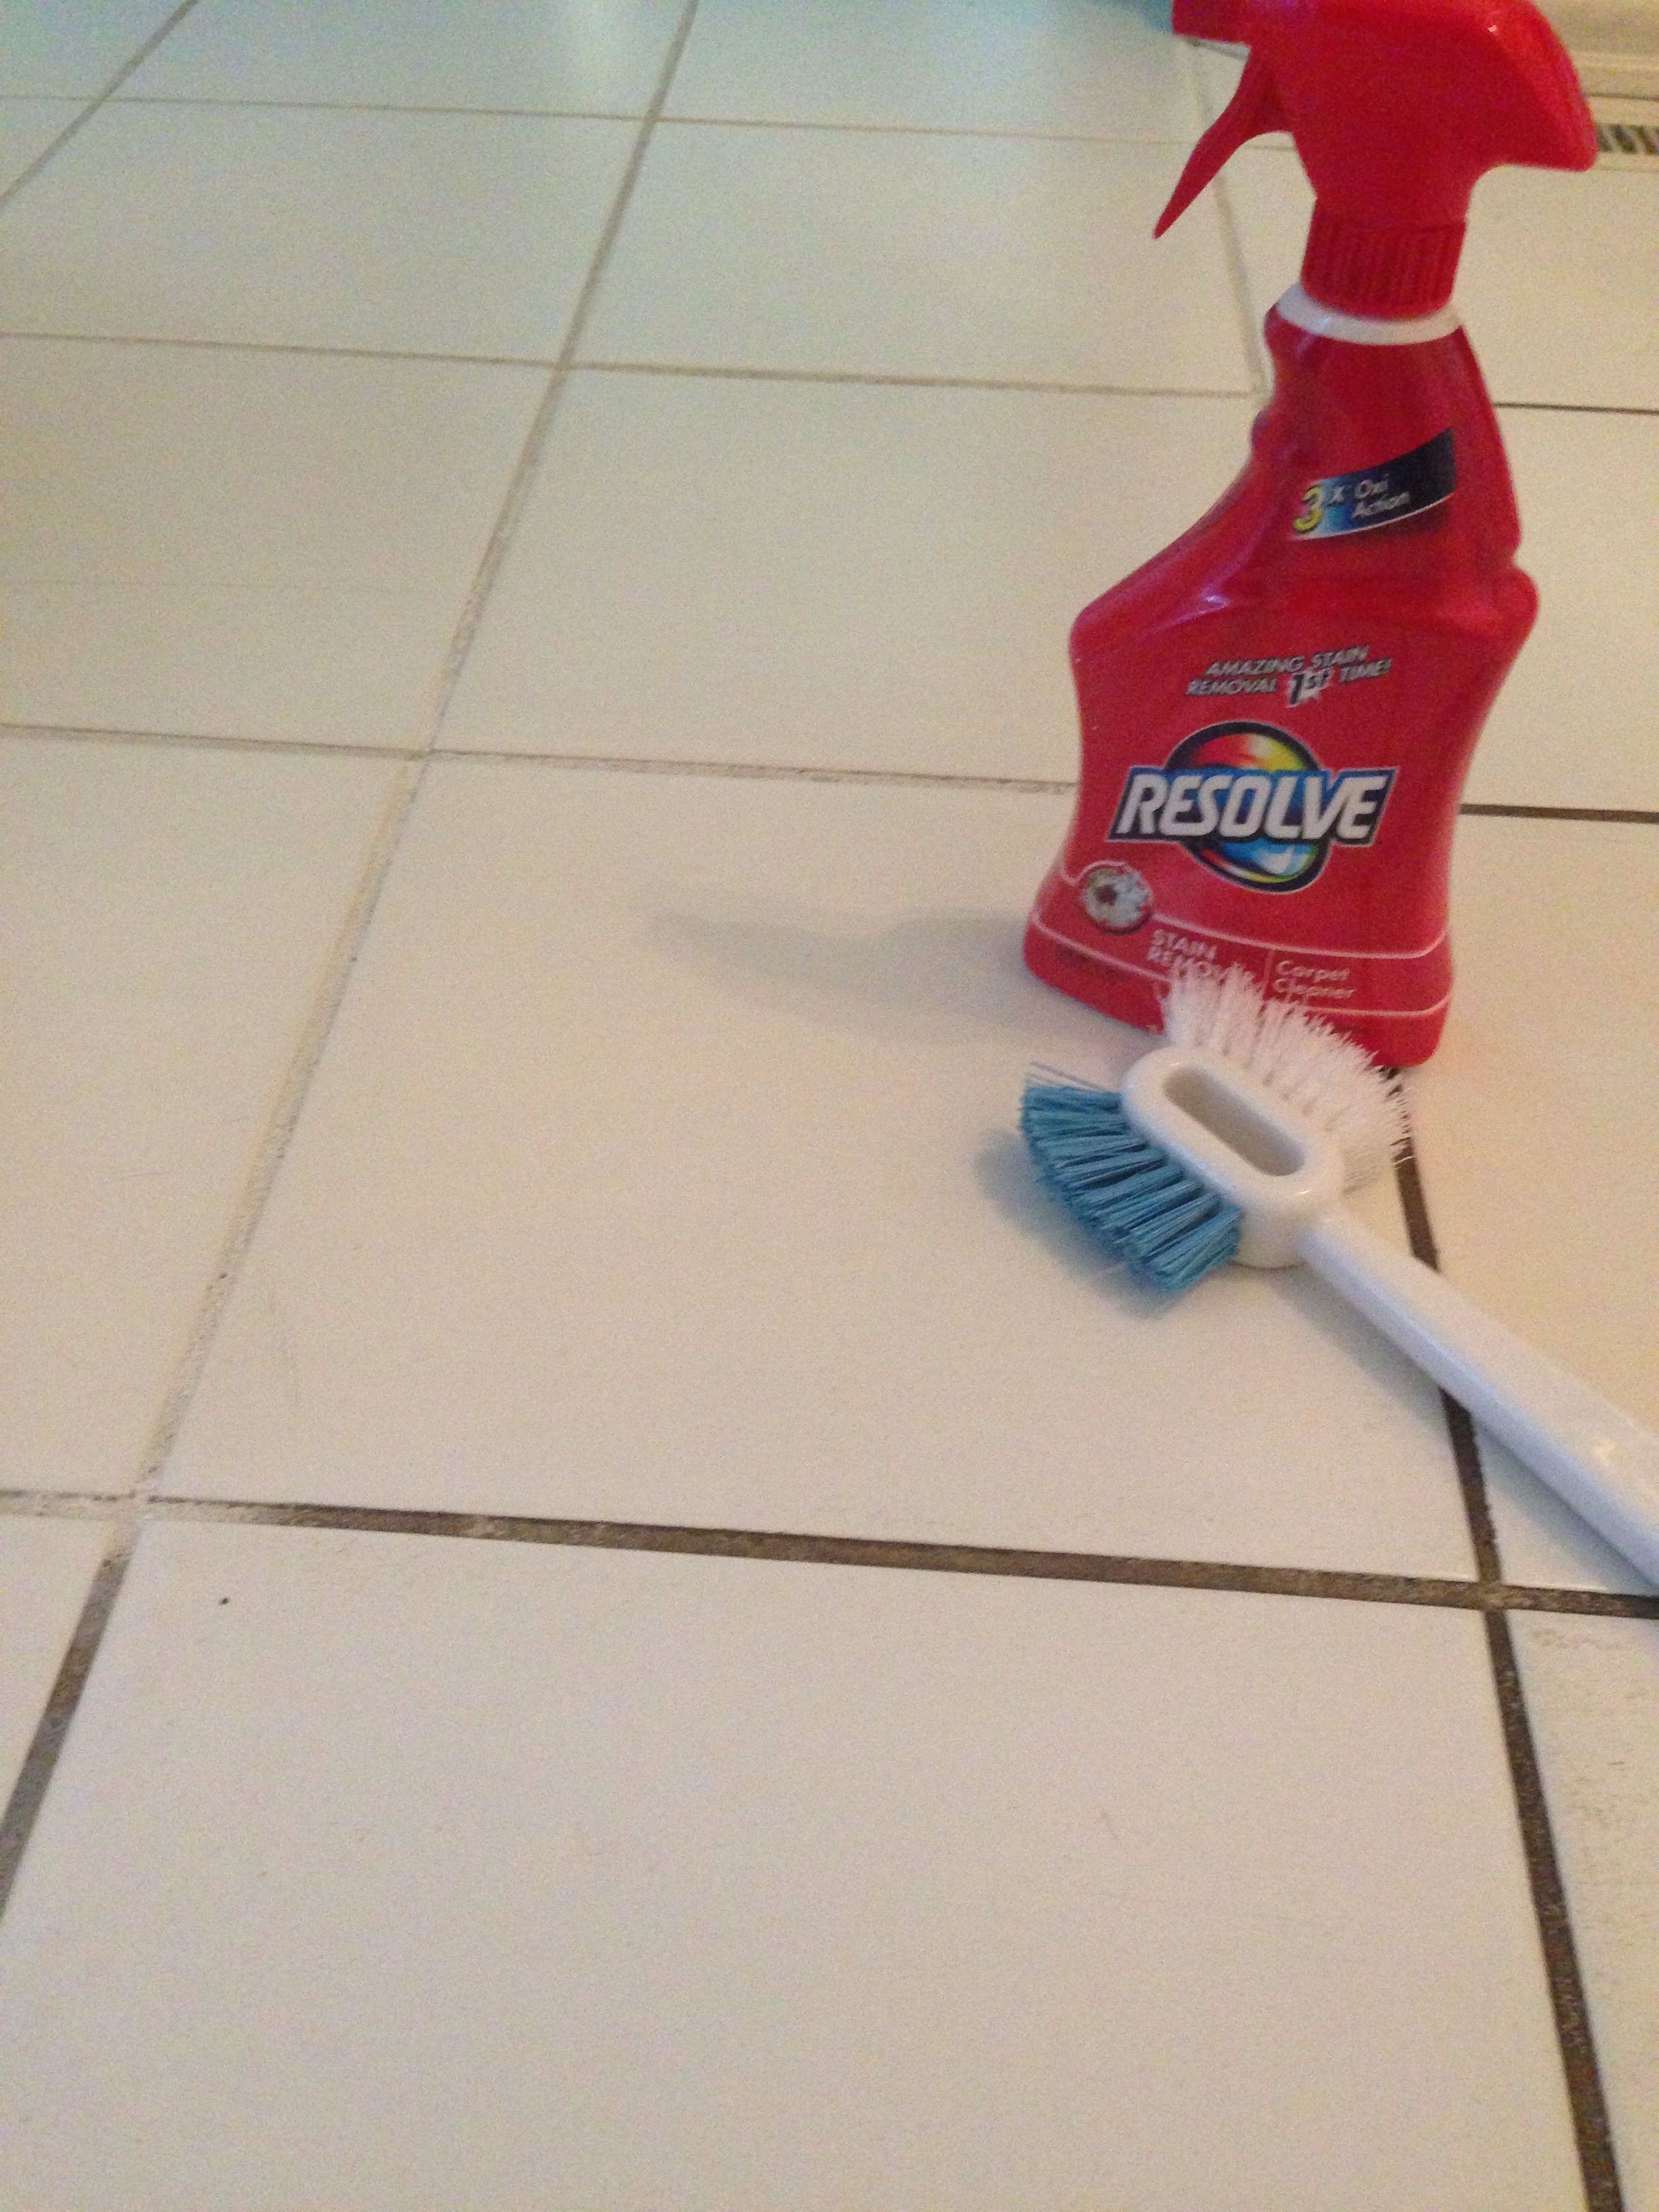 Resolve carpet cleaner to clean grout hydrogen peroxide for Cleaner for bathroom tiles